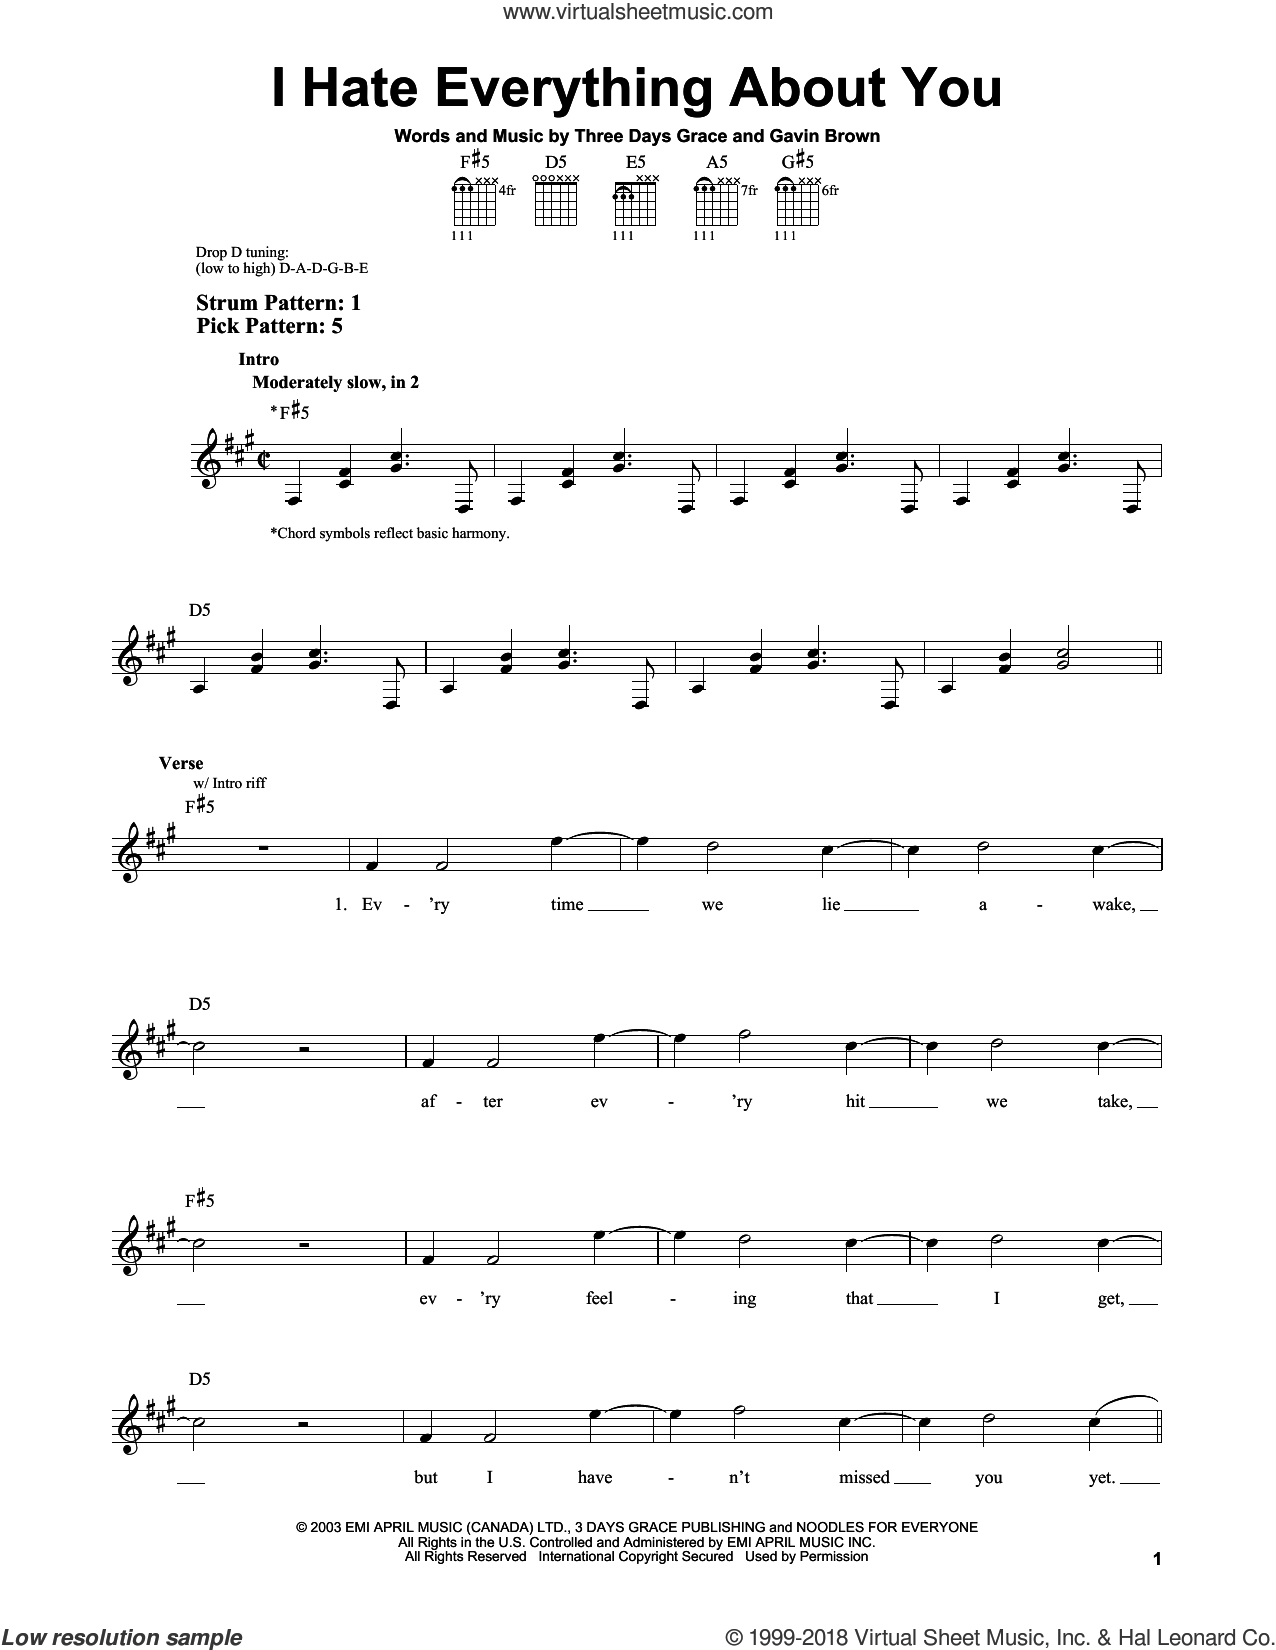 I Hate Everything About You sheet music for guitar solo (chords) by Gavin Brown and Three Days Grace. Score Image Preview.